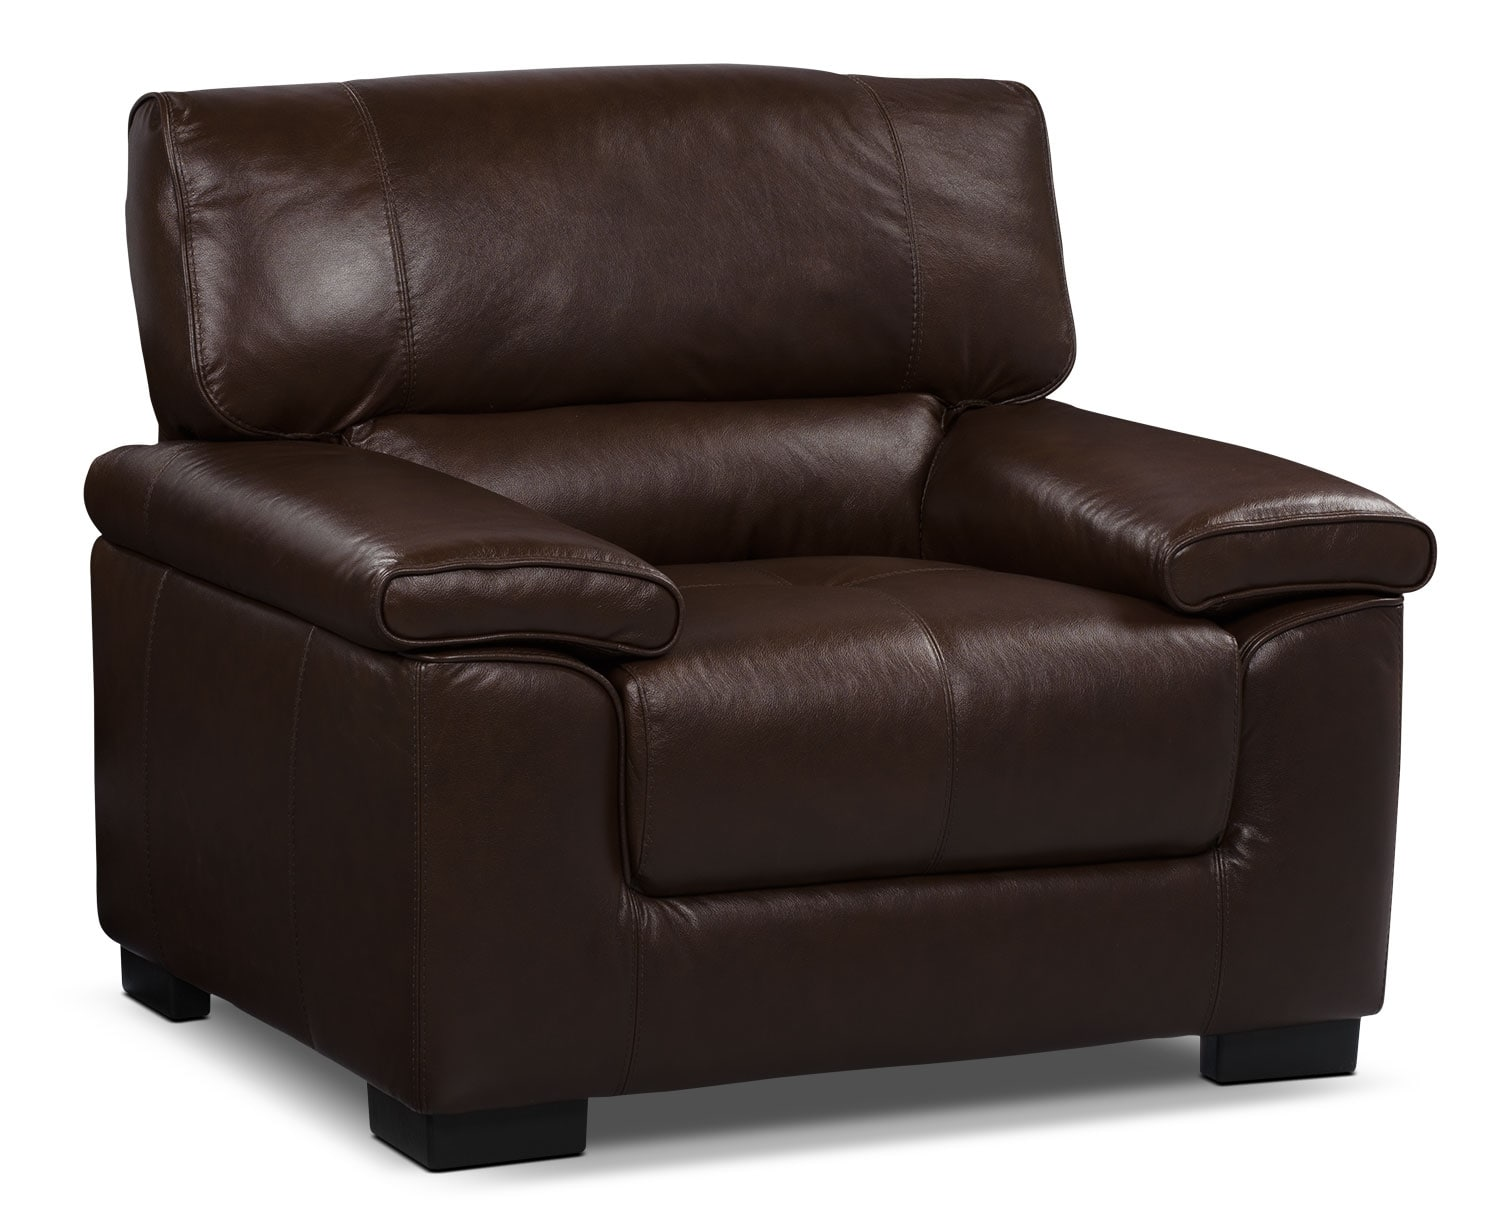 Living Room Furniture - Chateau d'Ax 100% Genuine Leather Chair - Dark Brown